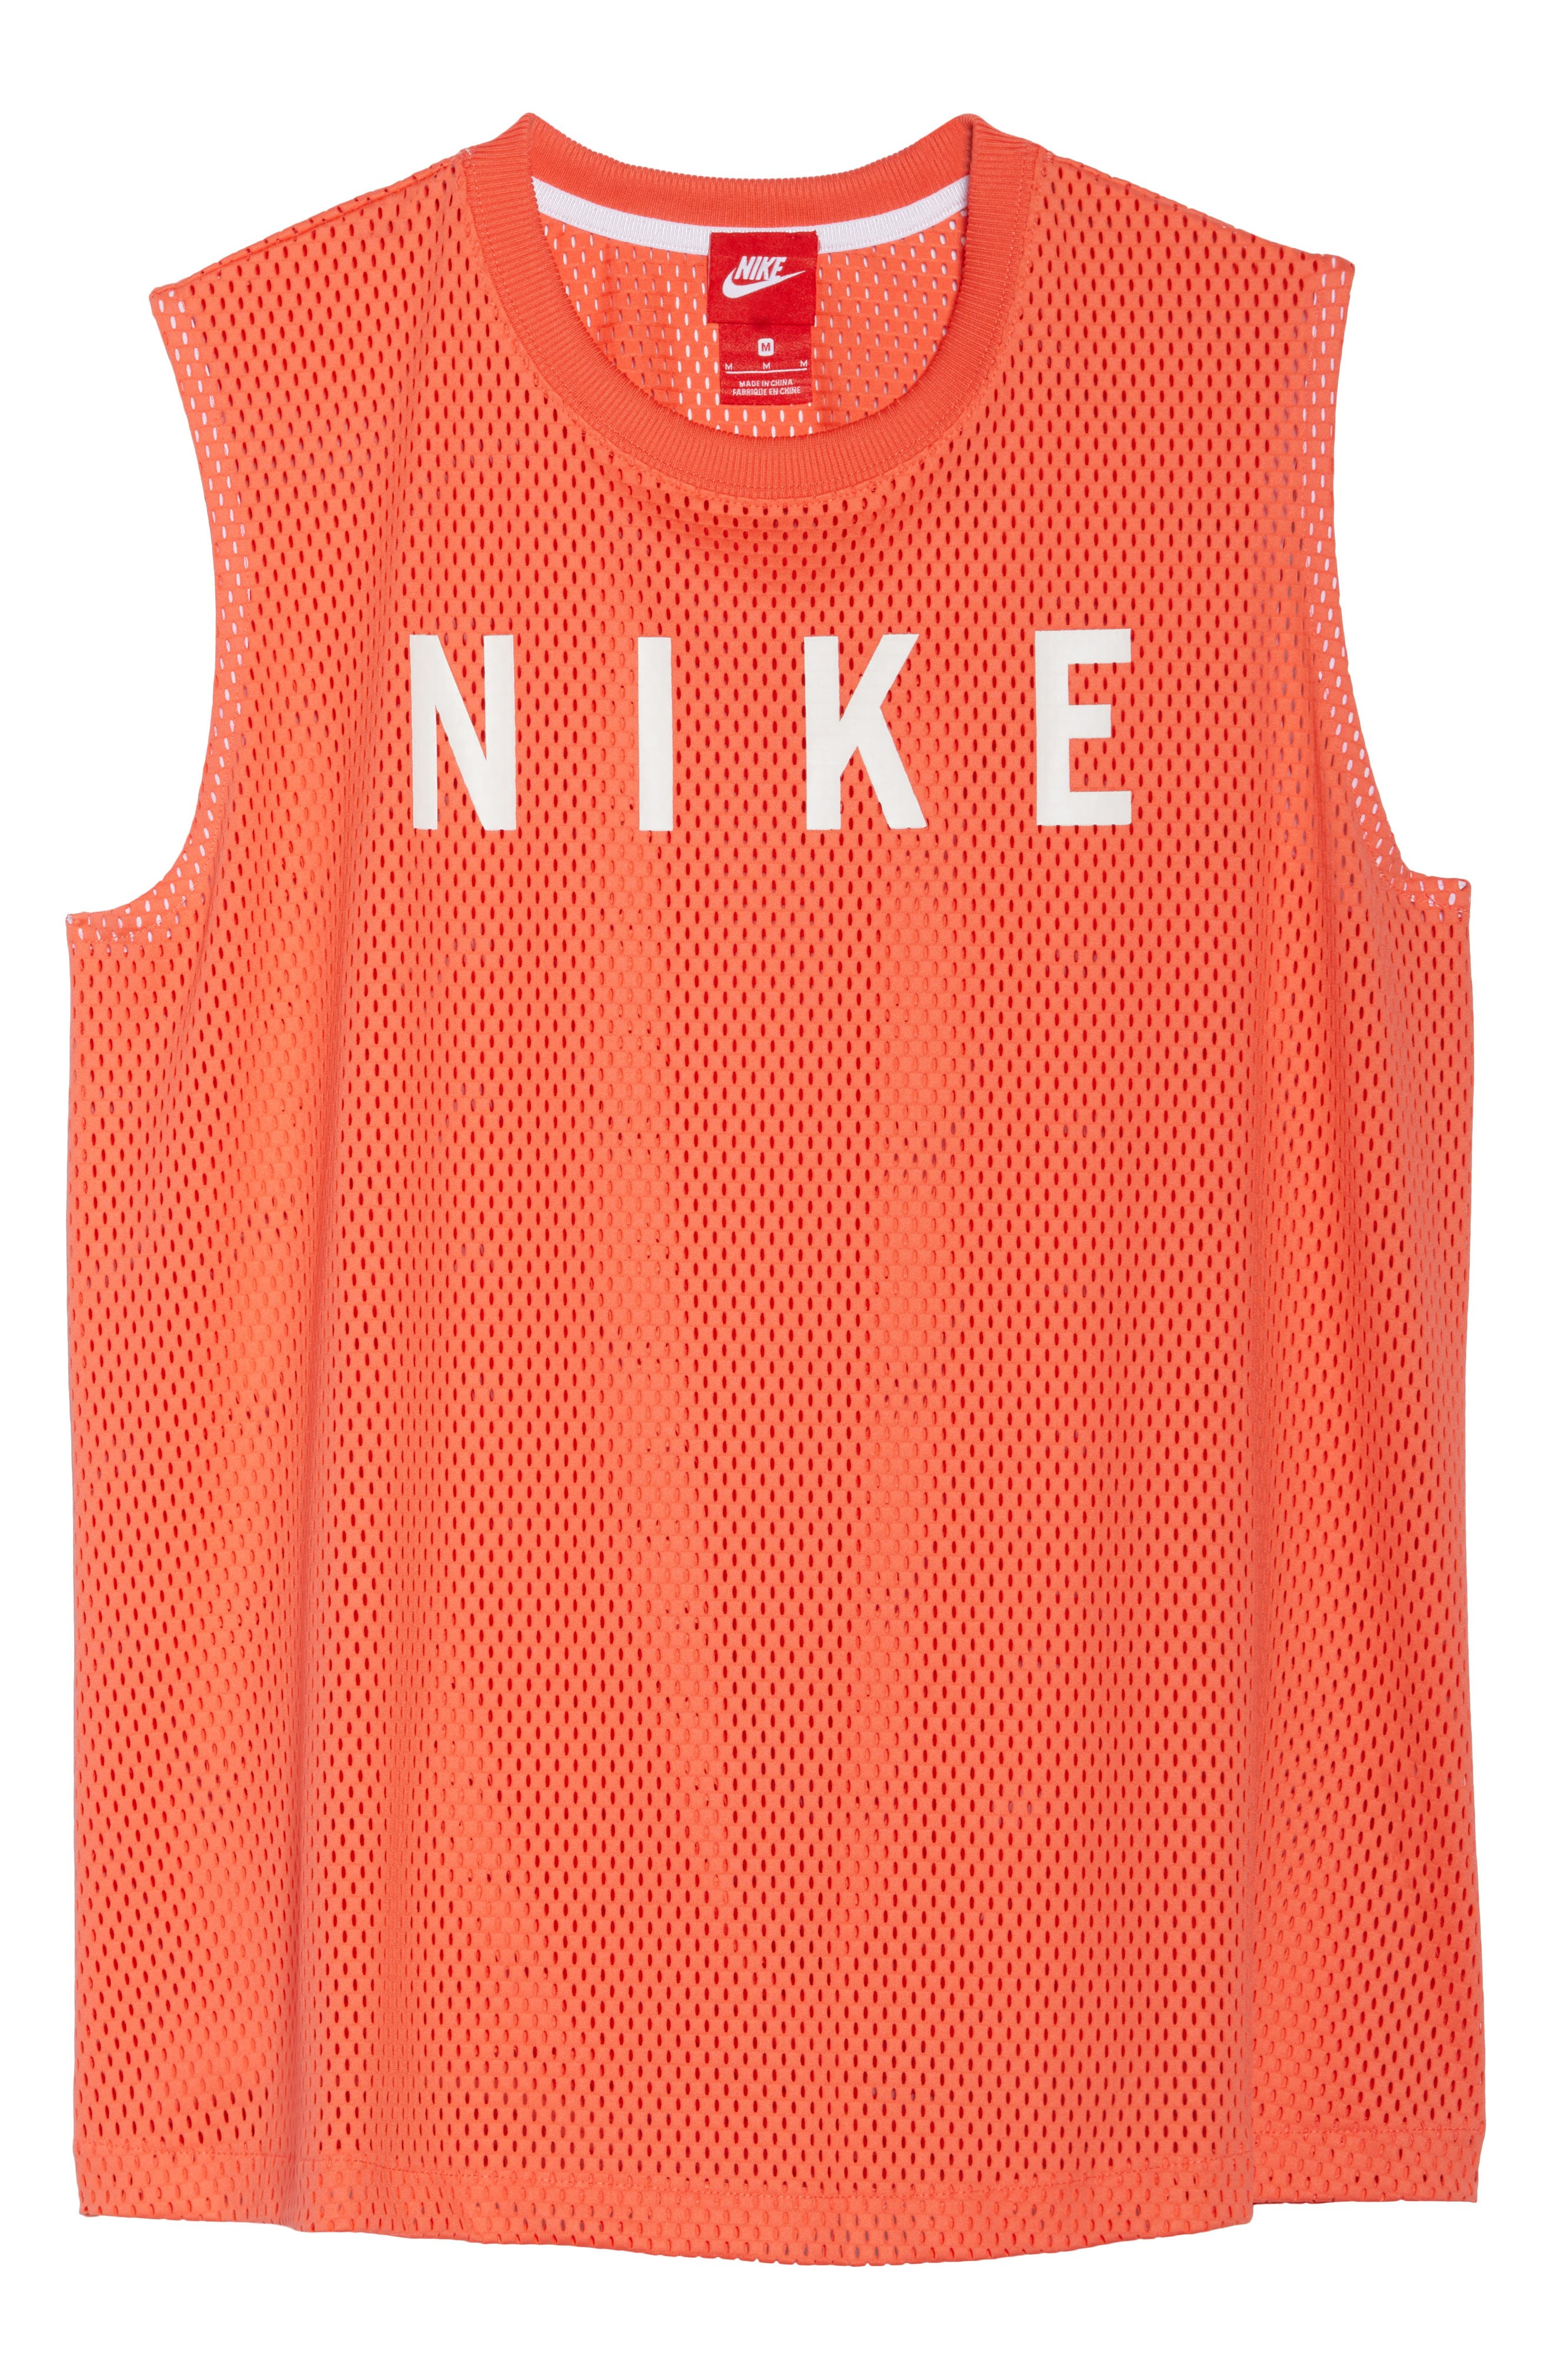 Sportswear Women's Dry Mesh Muscle Tank,                             Alternate thumbnail 7, color,                             Rush Coral/ White